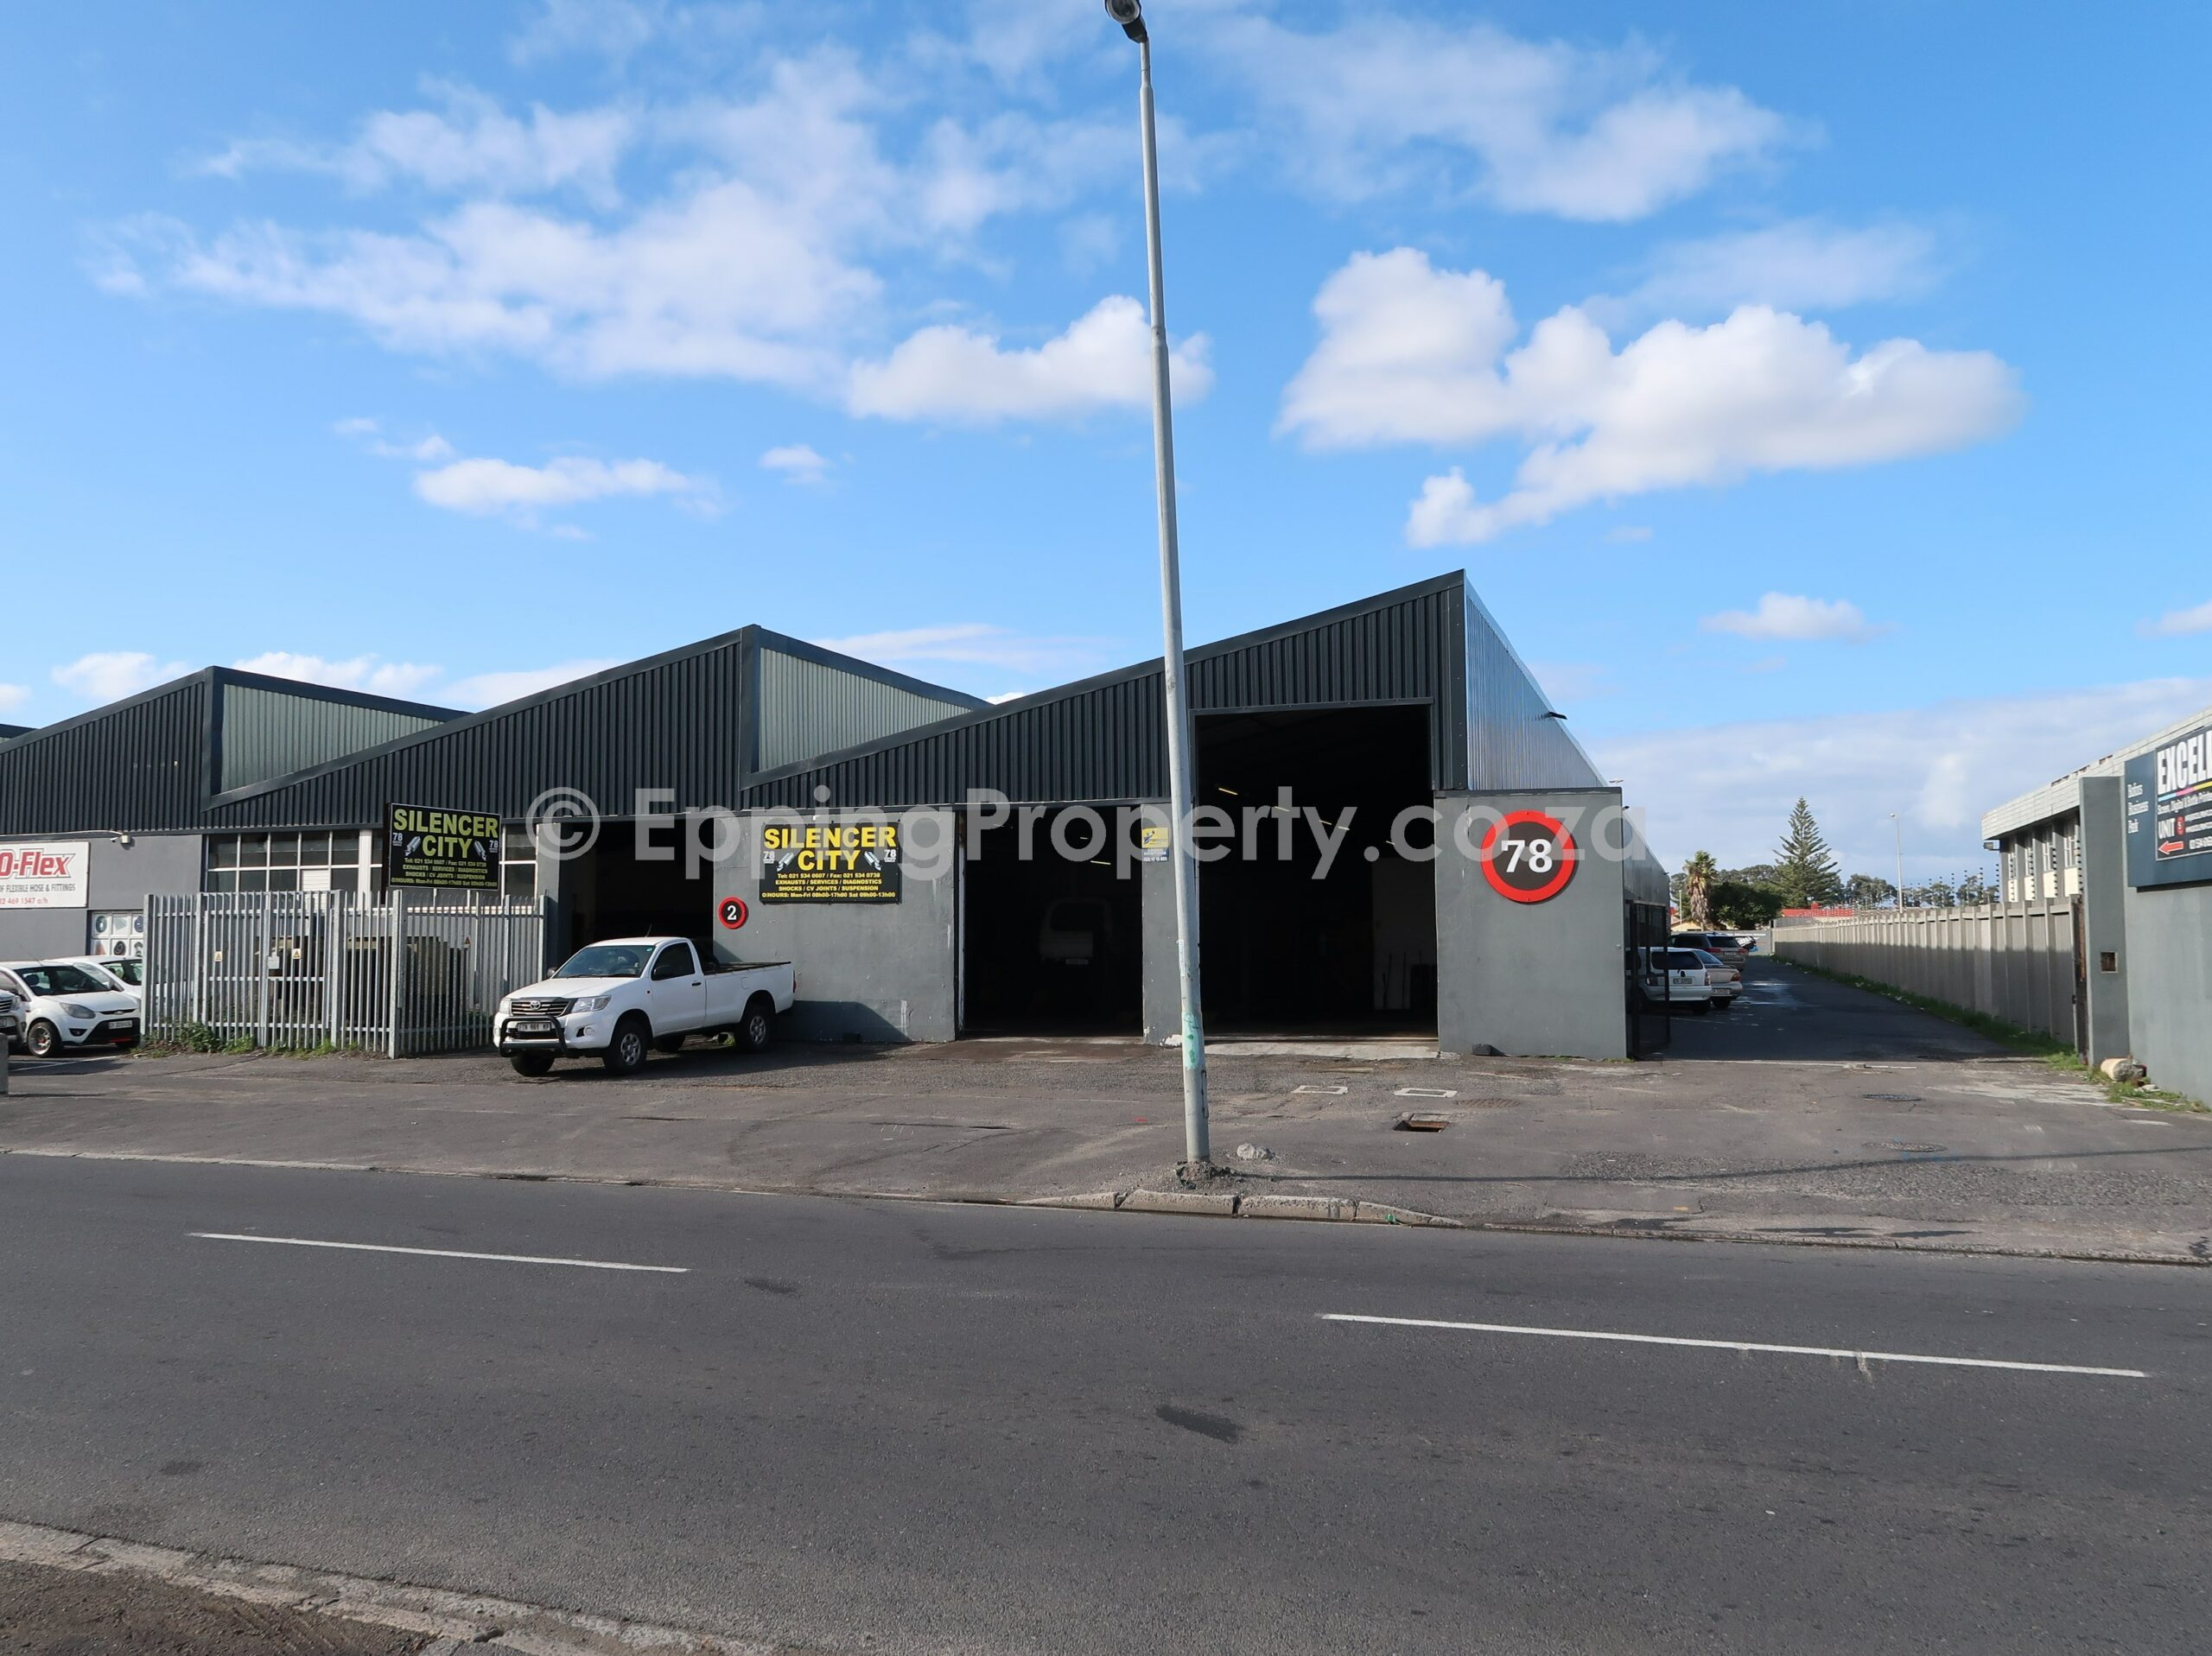 Epping Industrial Property Rent Cape Town